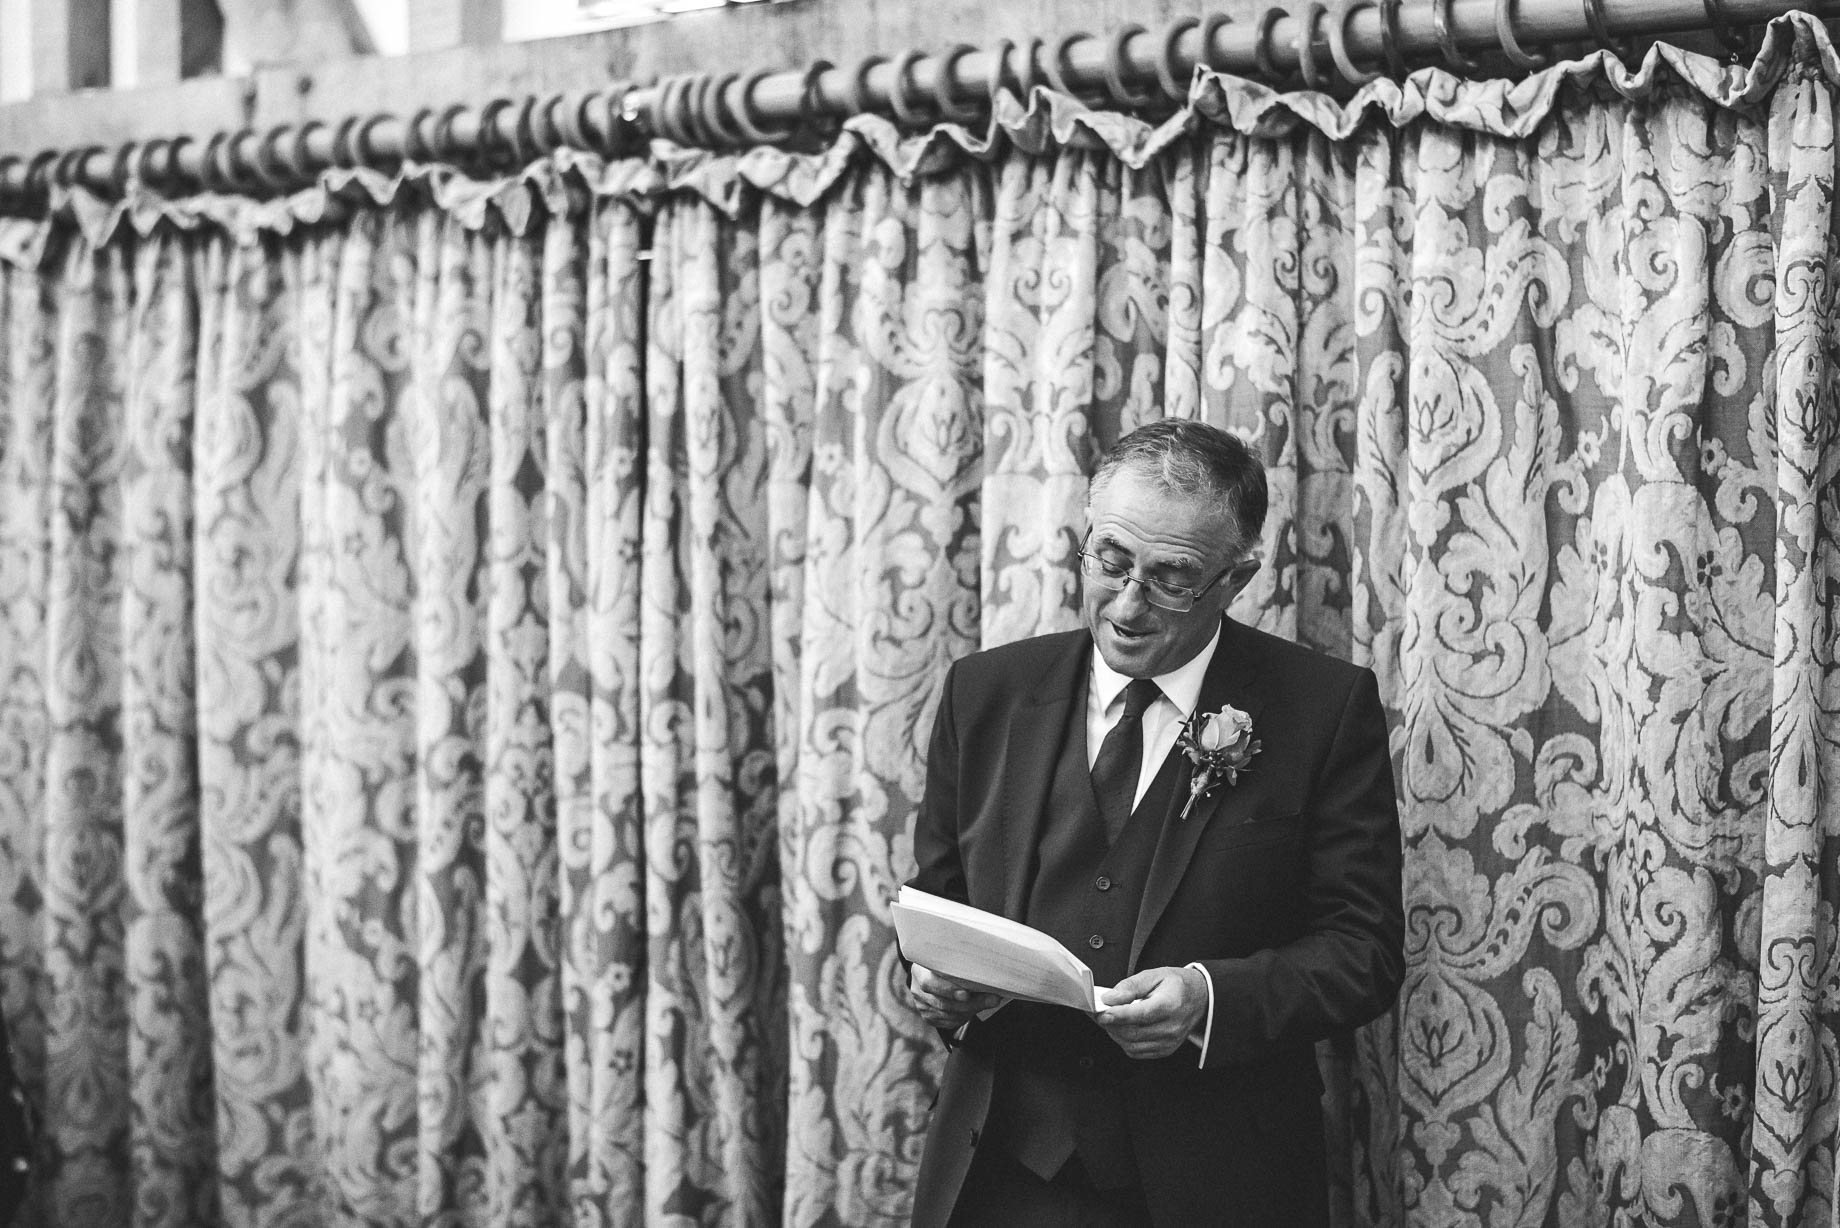 Gate Street Barn wedding photography - Guy Collier - Claire and Andy (130 of 192)